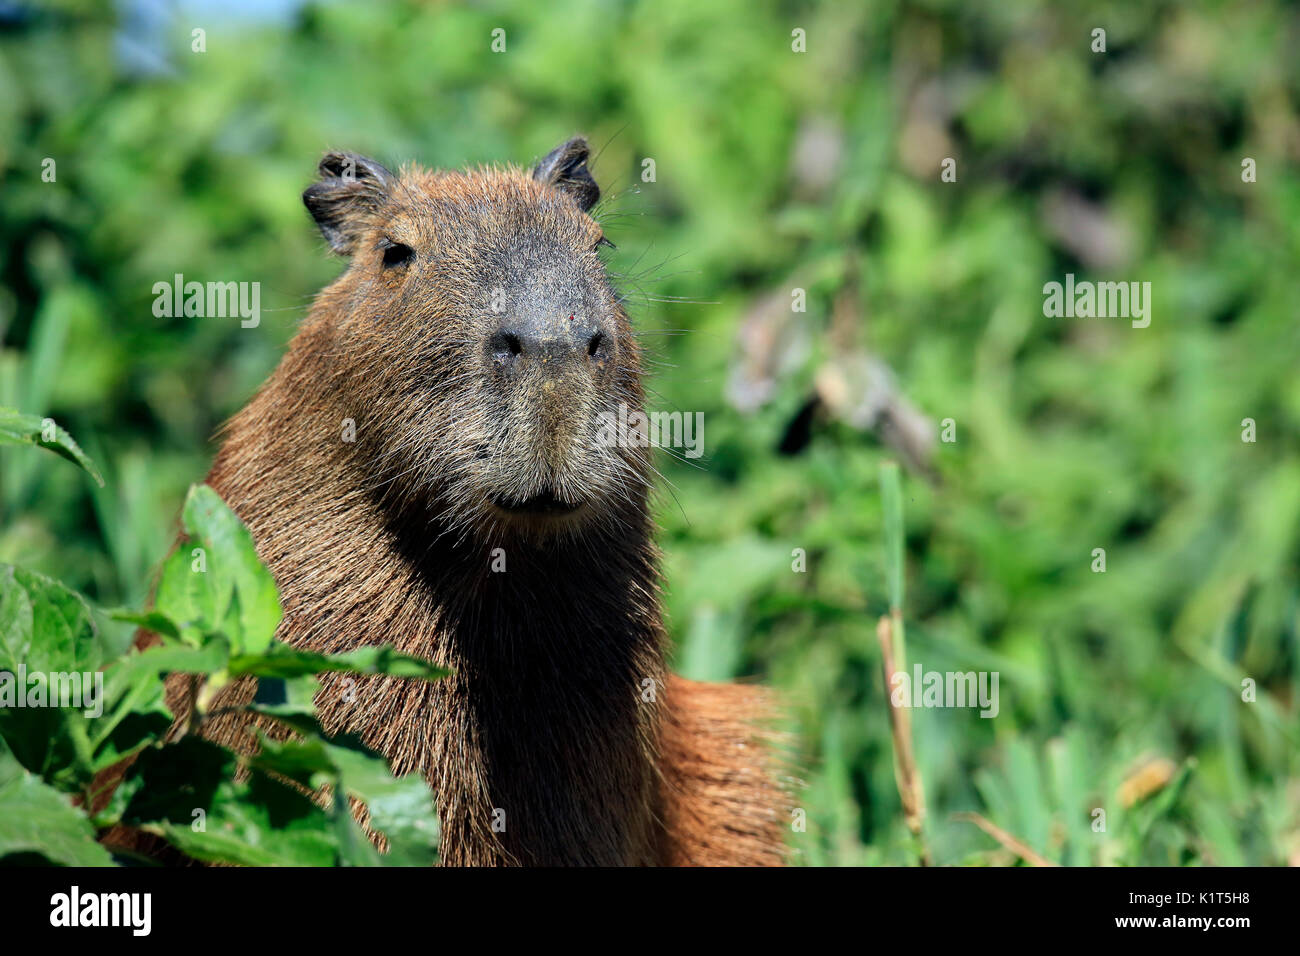 Close-up of a Capybara. Pantanal, Brazil - Stock Image